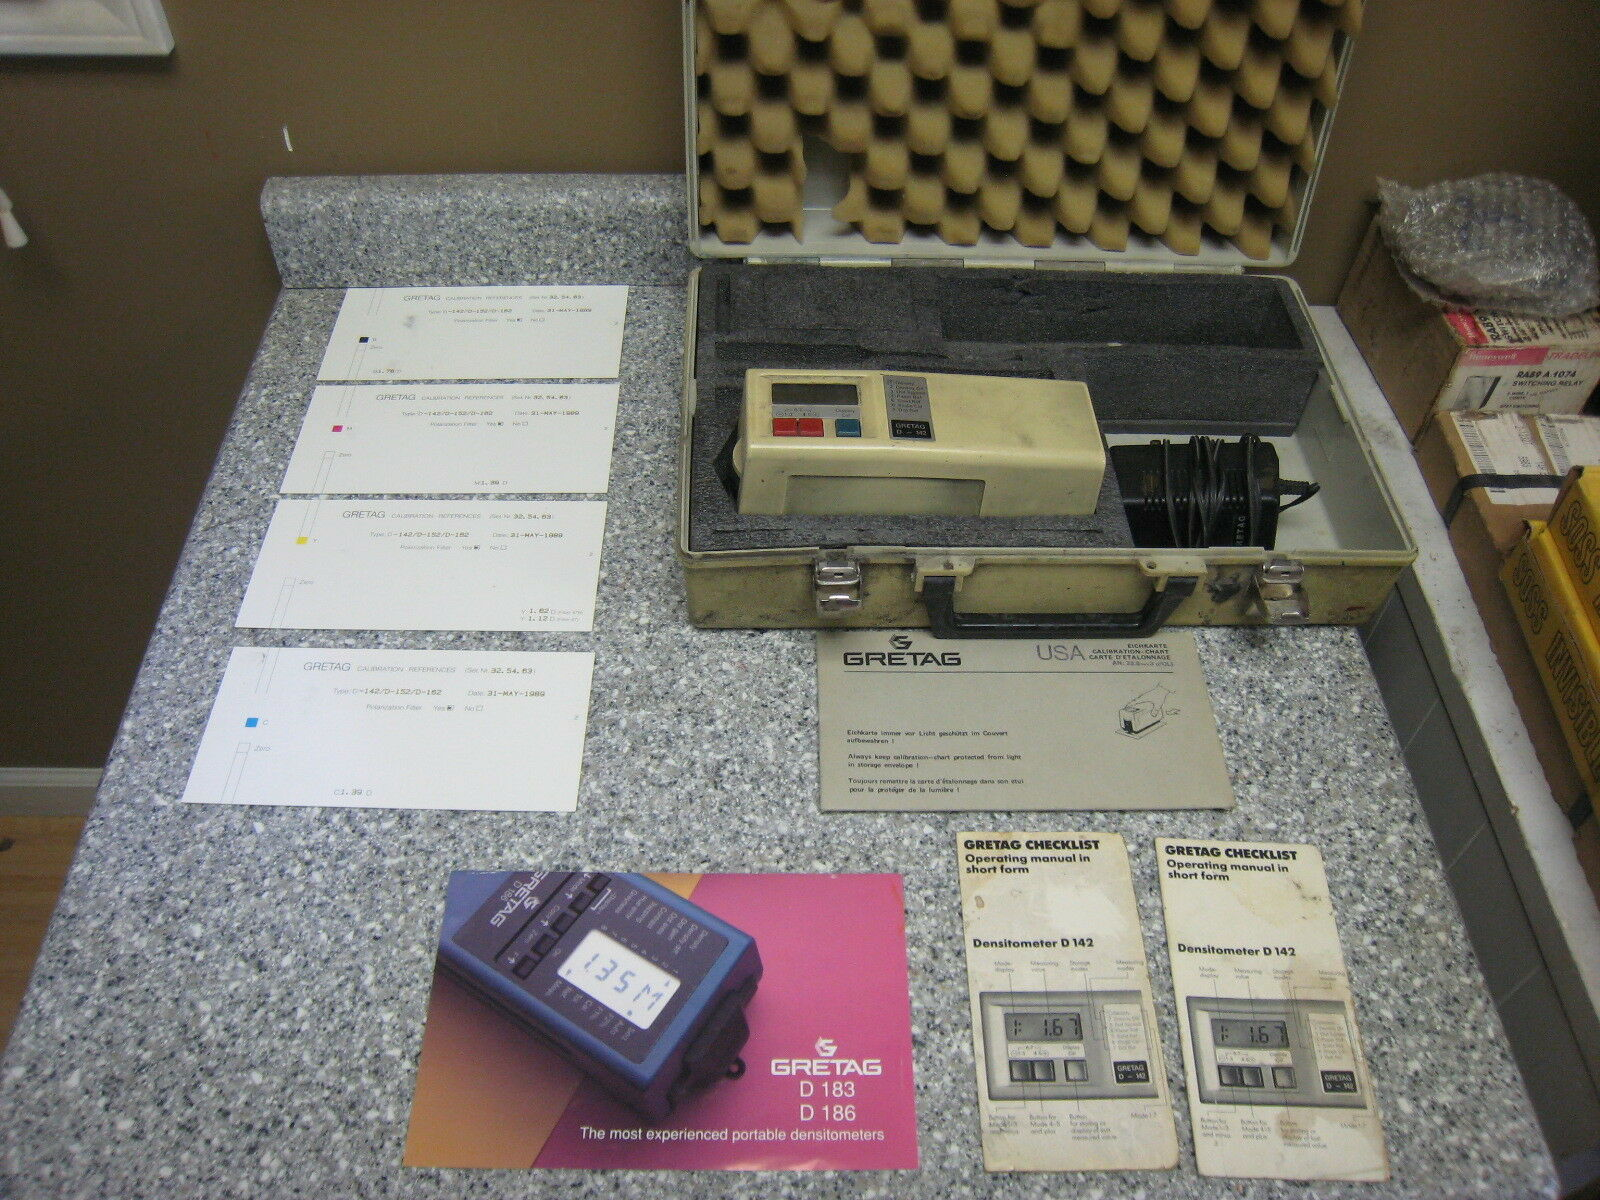 GRETAG D 186 Densitometer with Power Cord